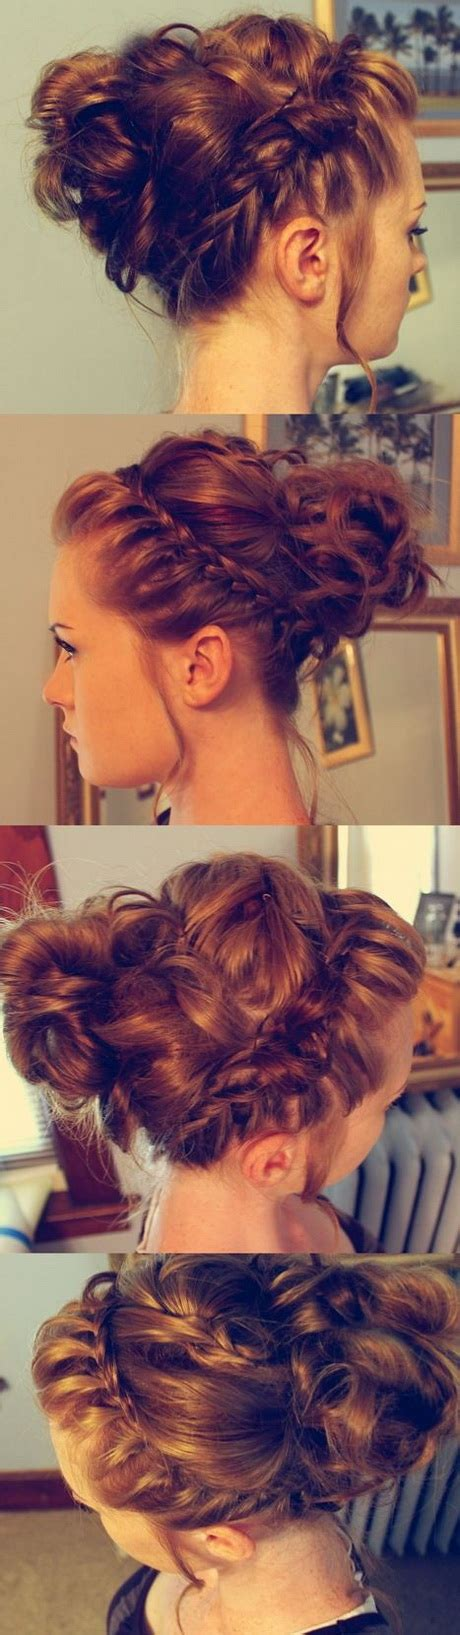 hair up styles 2015 cute prom hairstyles for long hair 2015